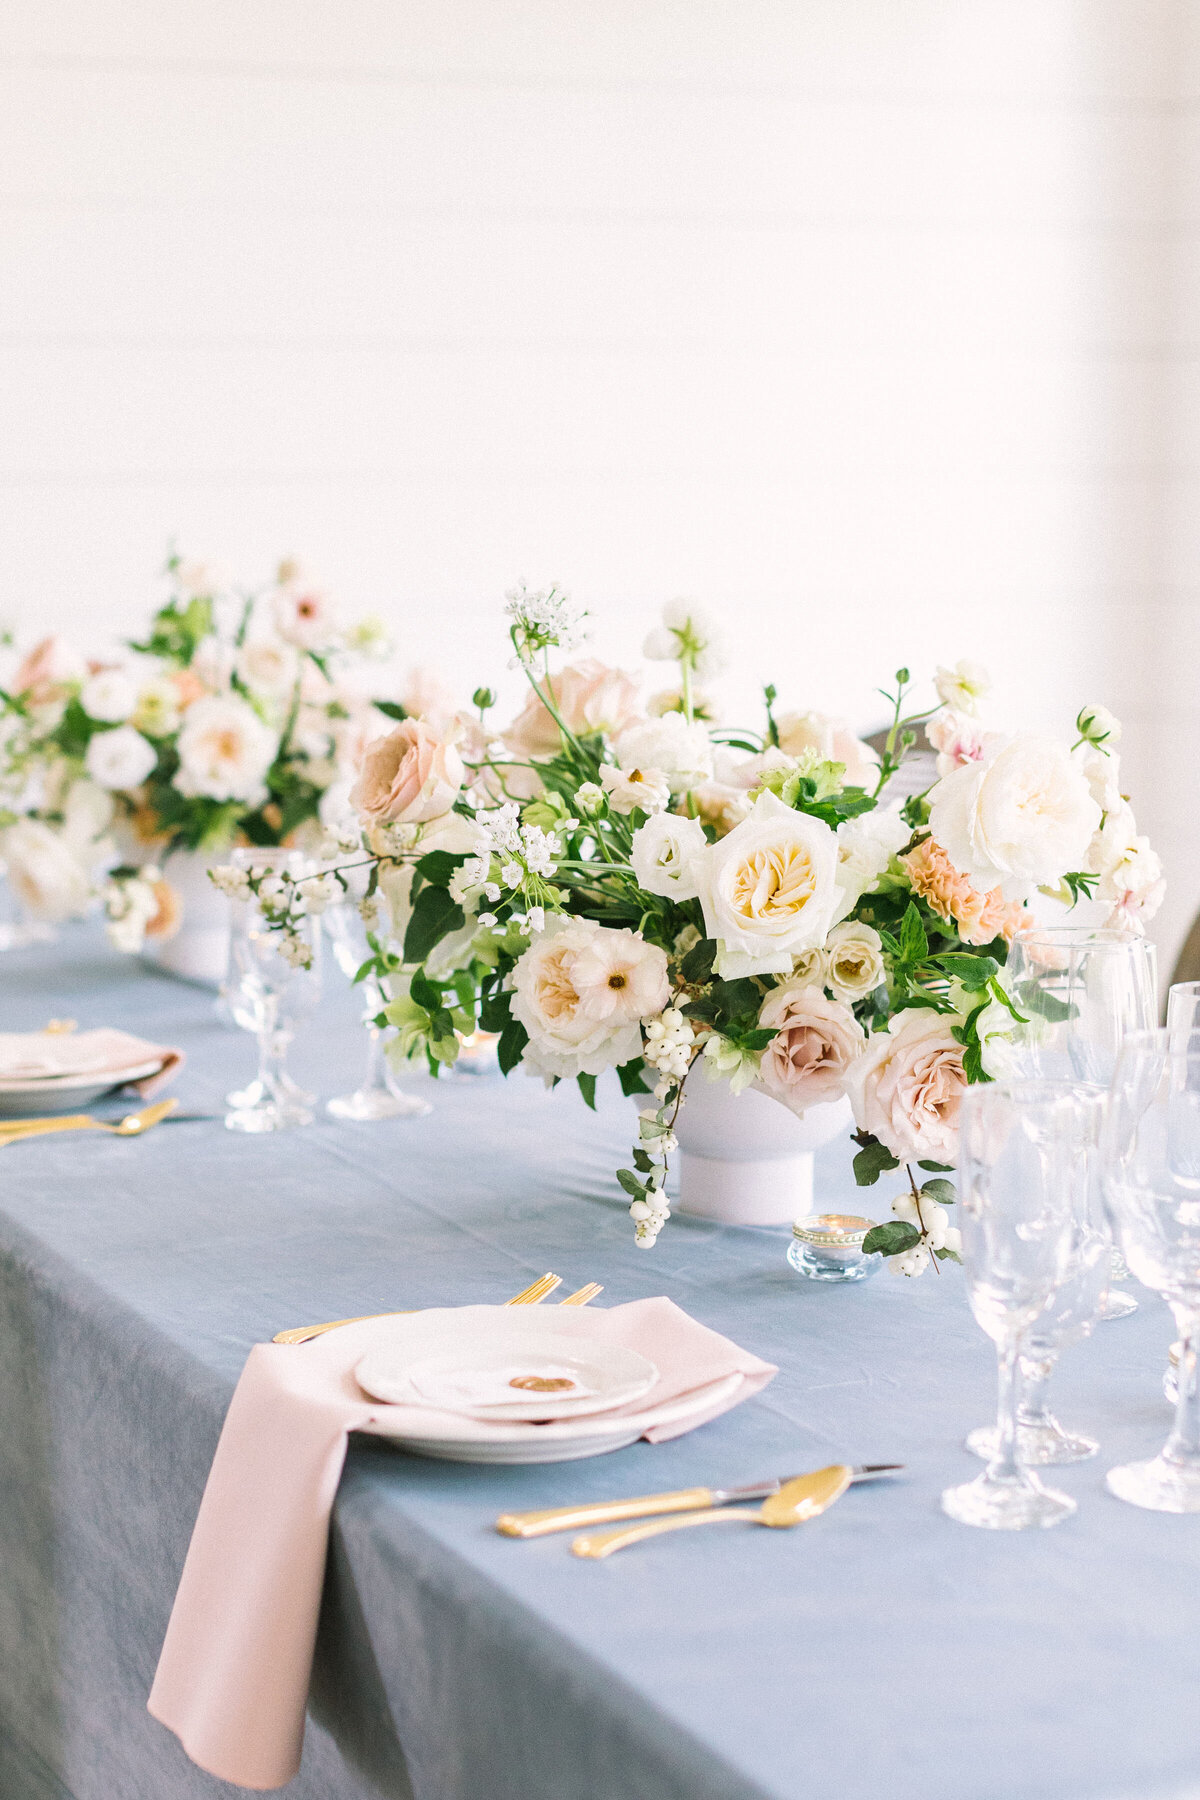 A beautiful table scape with white and pink floral arrangements